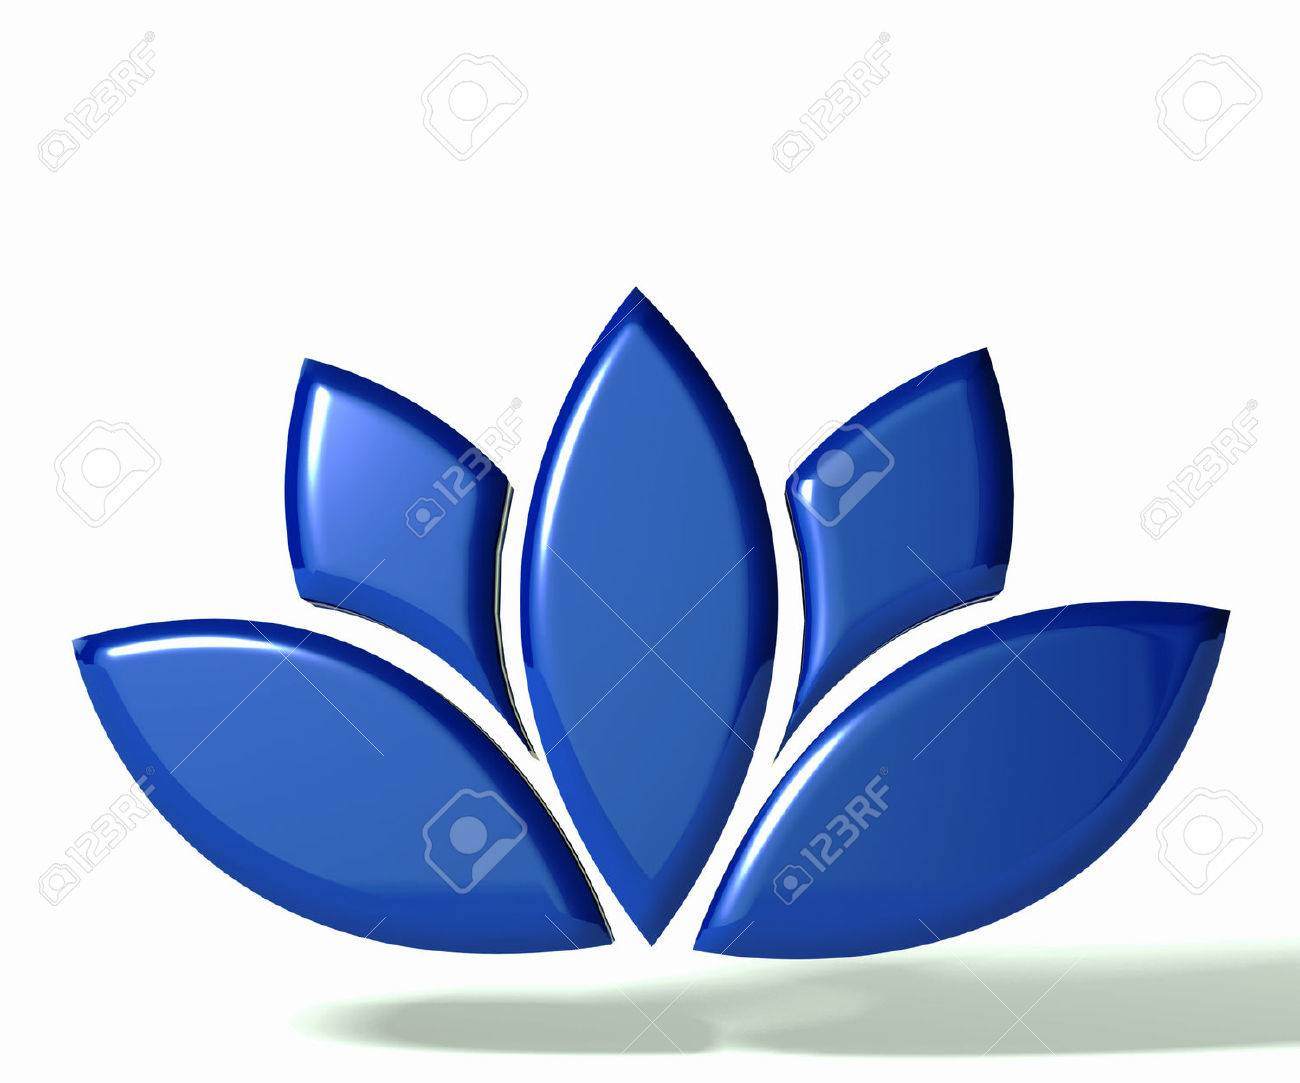 Blue lotus flower 3d image stock photo picture and royalty free blue lotus flower 3d image stock photo 25327112 mightylinksfo